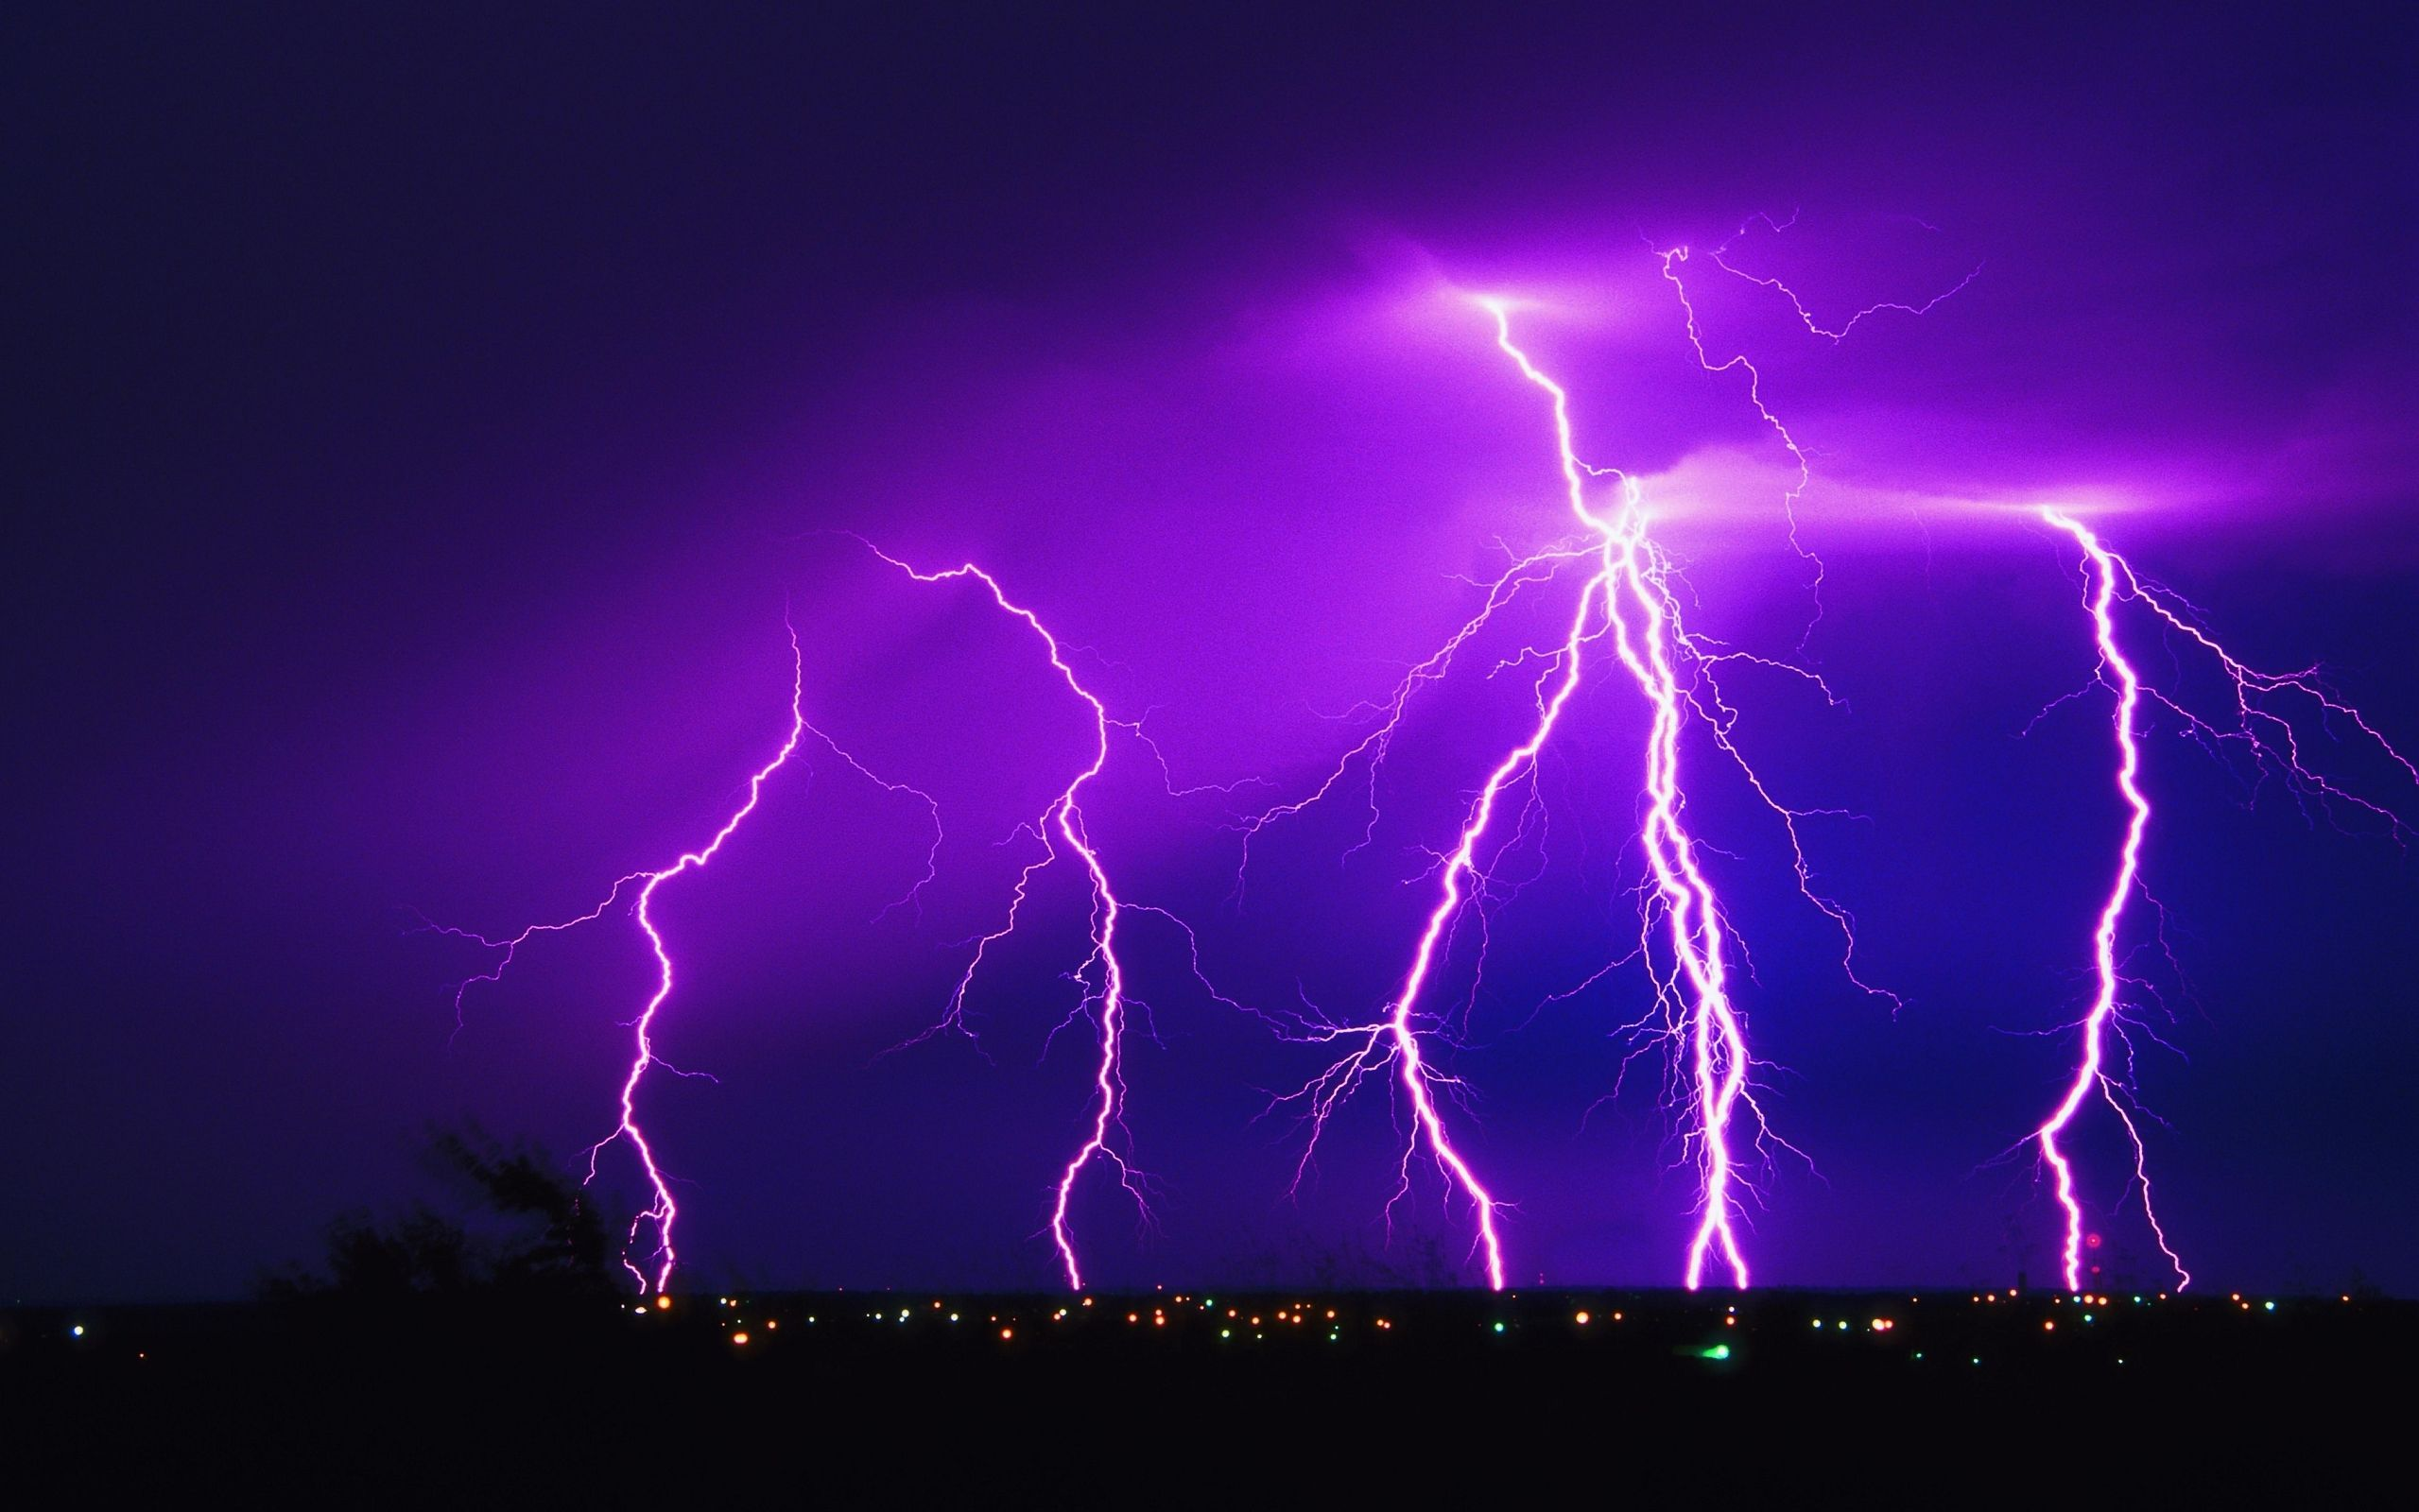 Download lightning strike hd wallpapers and HQ Pictures - megahdwall.com